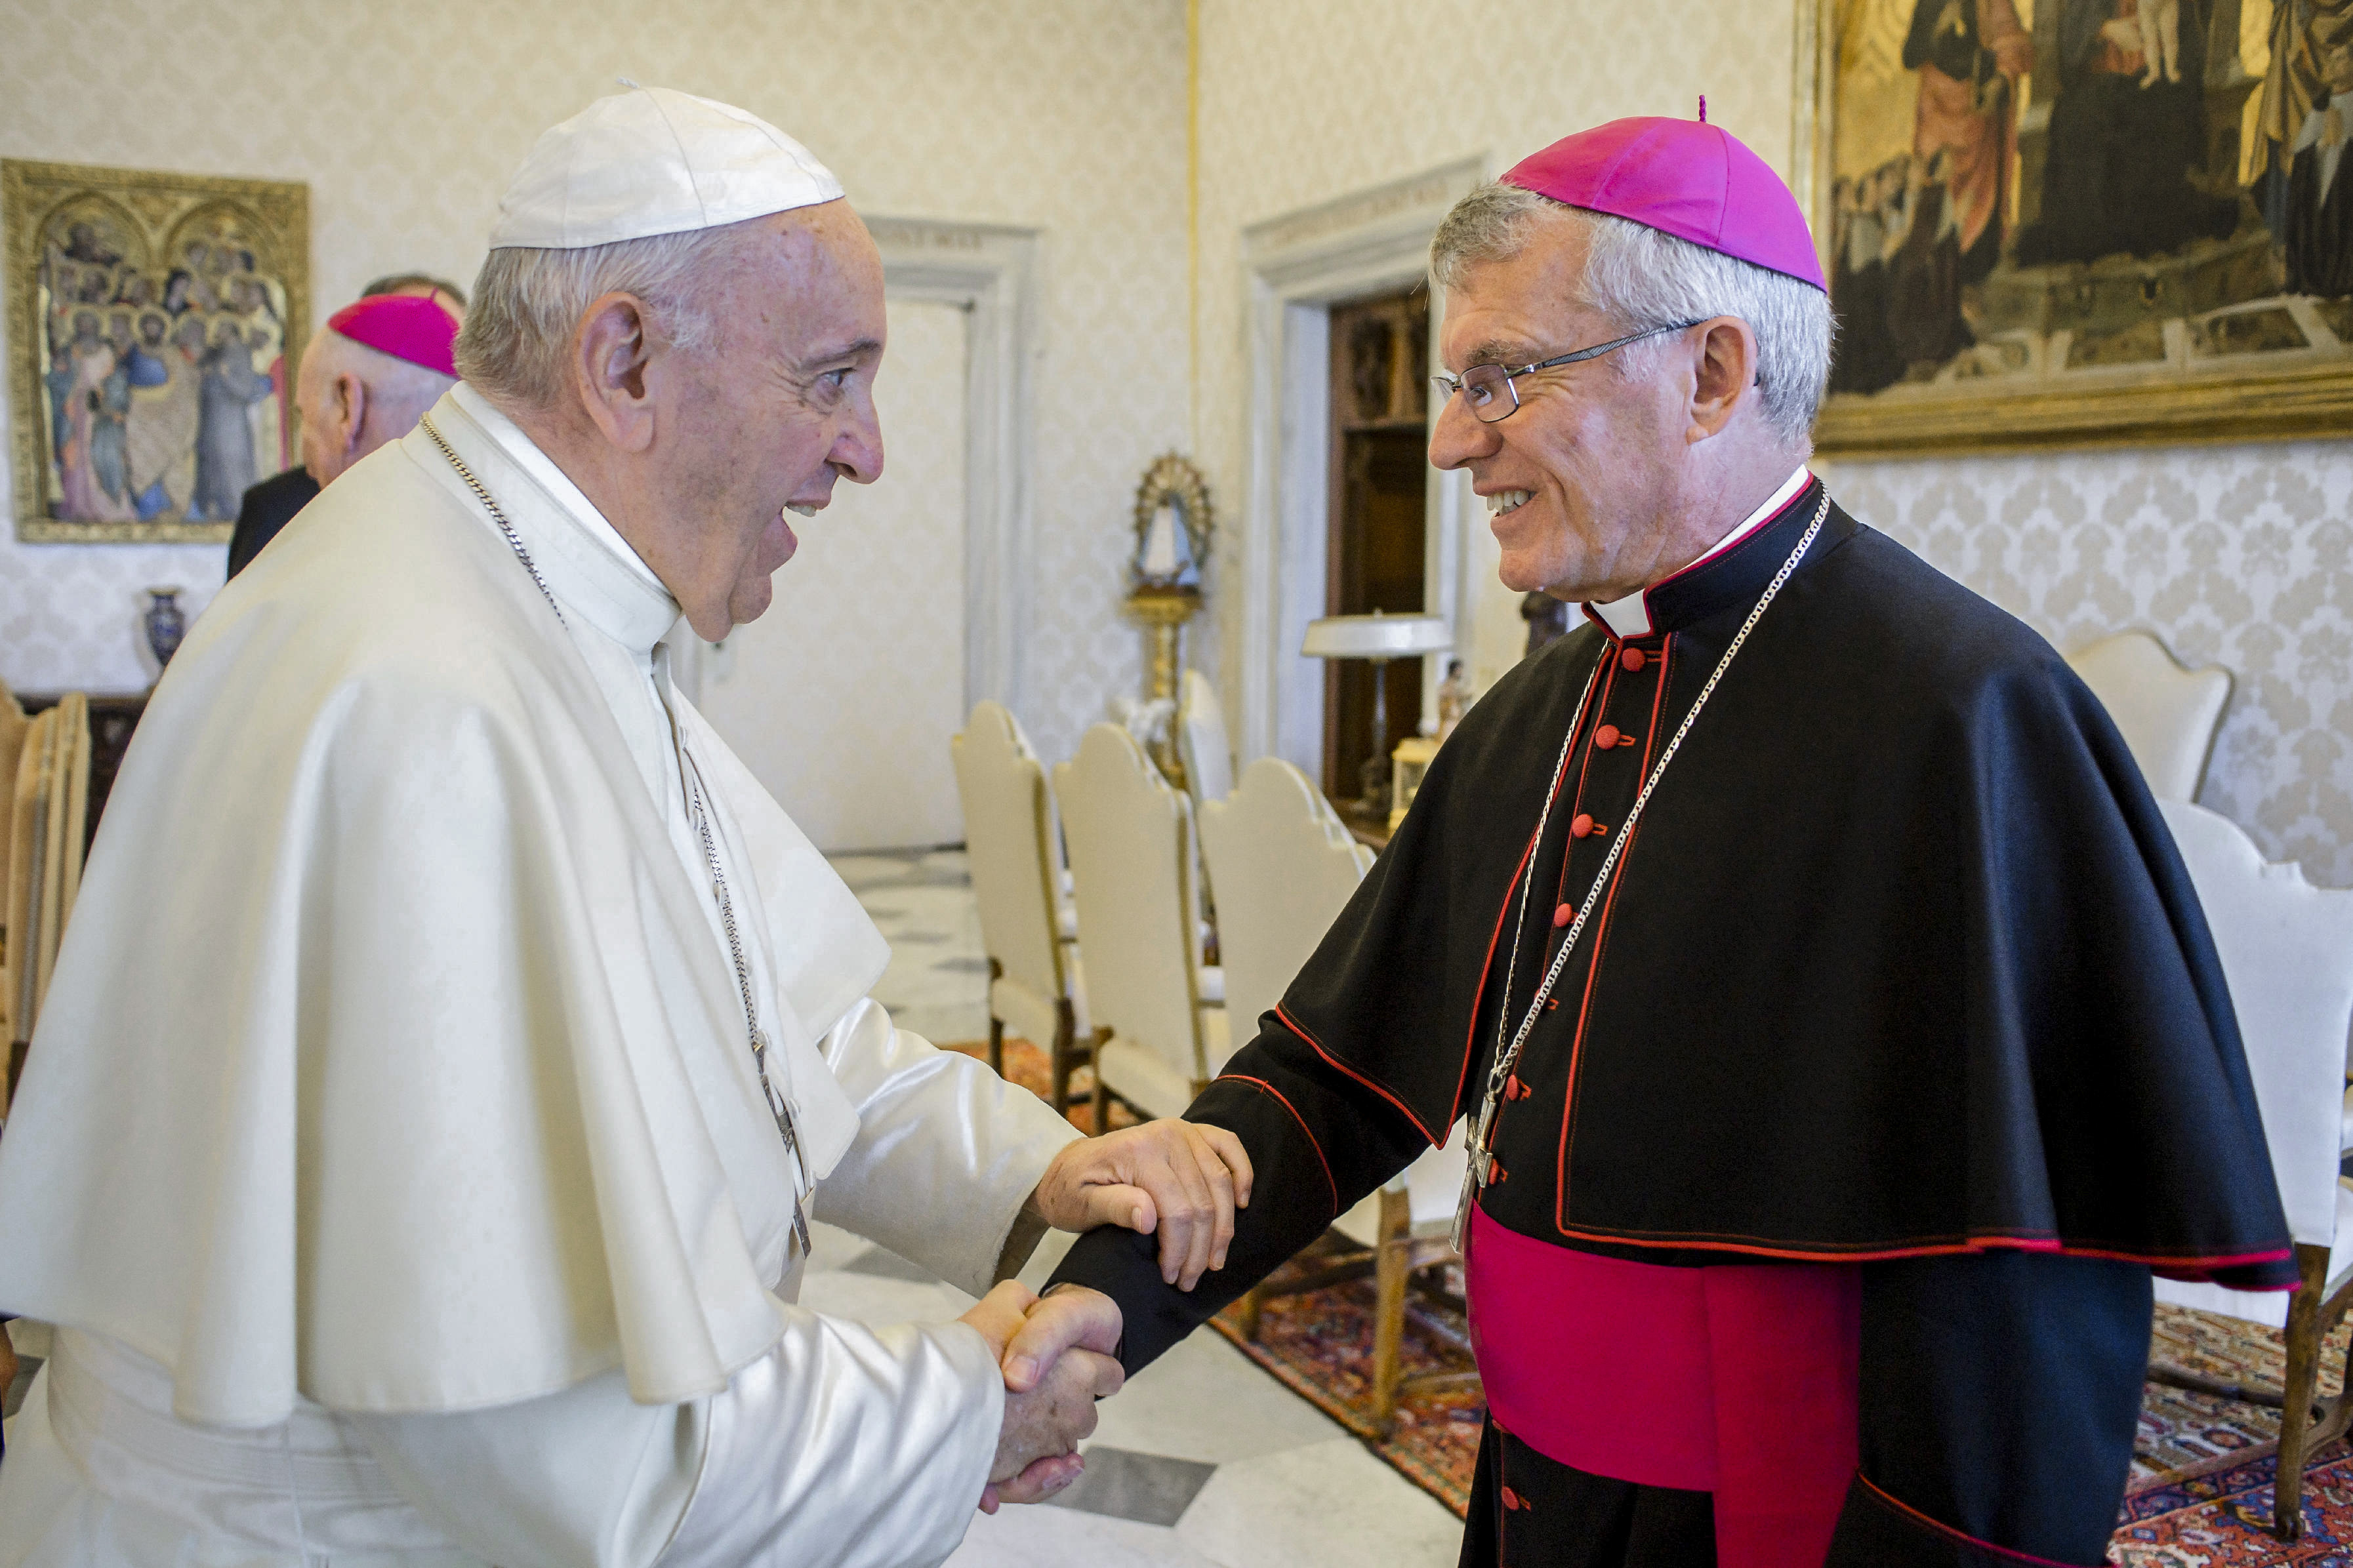 Pope Francis greets Archbishop Timothy Costelloe of Perth, Australia, during a meeting with Australian bishops on their